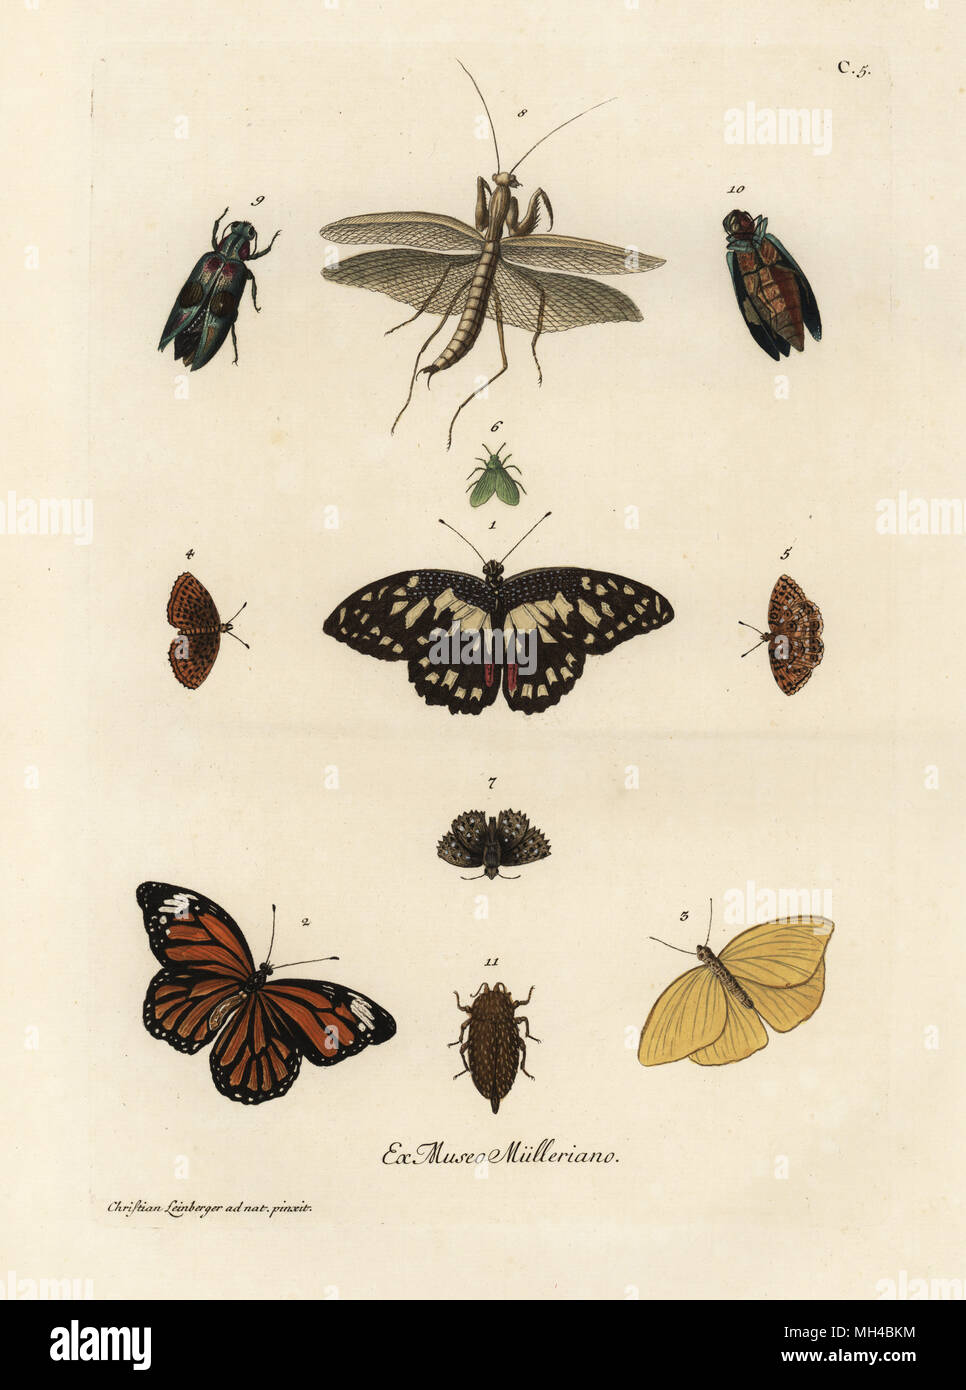 Varieties of butterflies, moths and insects. Handcoloured copperplate engraving after an illustration by Christian Leinberger from Georg Wolfgang Knorr's Deliciae Naturae Selectae of Kabinet van Zeldzaamheden der Natuur, Blusse and Son, Nuremberg, 1771. Specimens from a Wunderkammer or Cabinet of Curiosities owned by P.L. Muller. - Stock Image